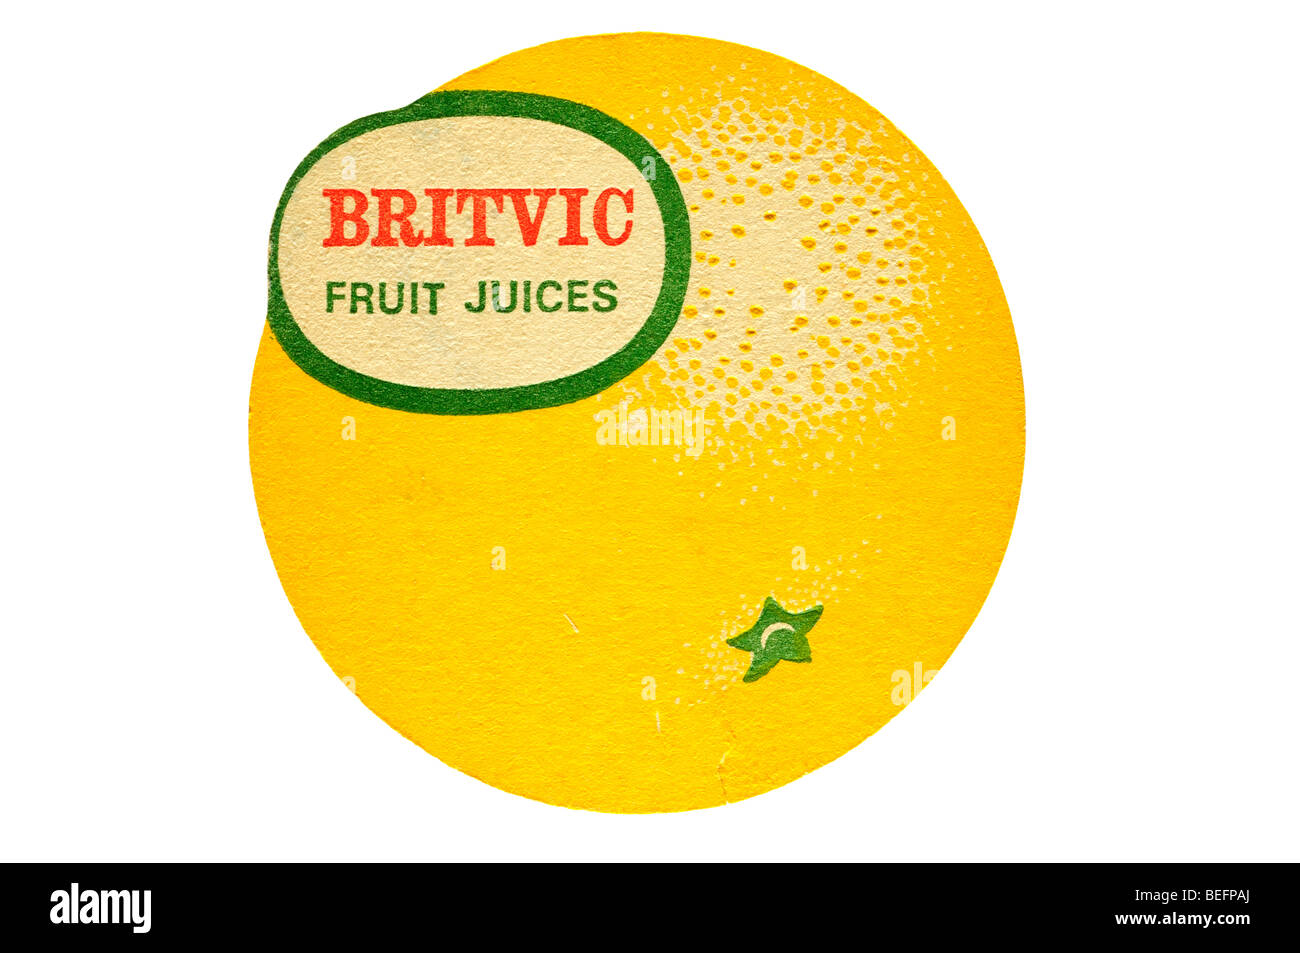 britvic fruit juices - Stock Image